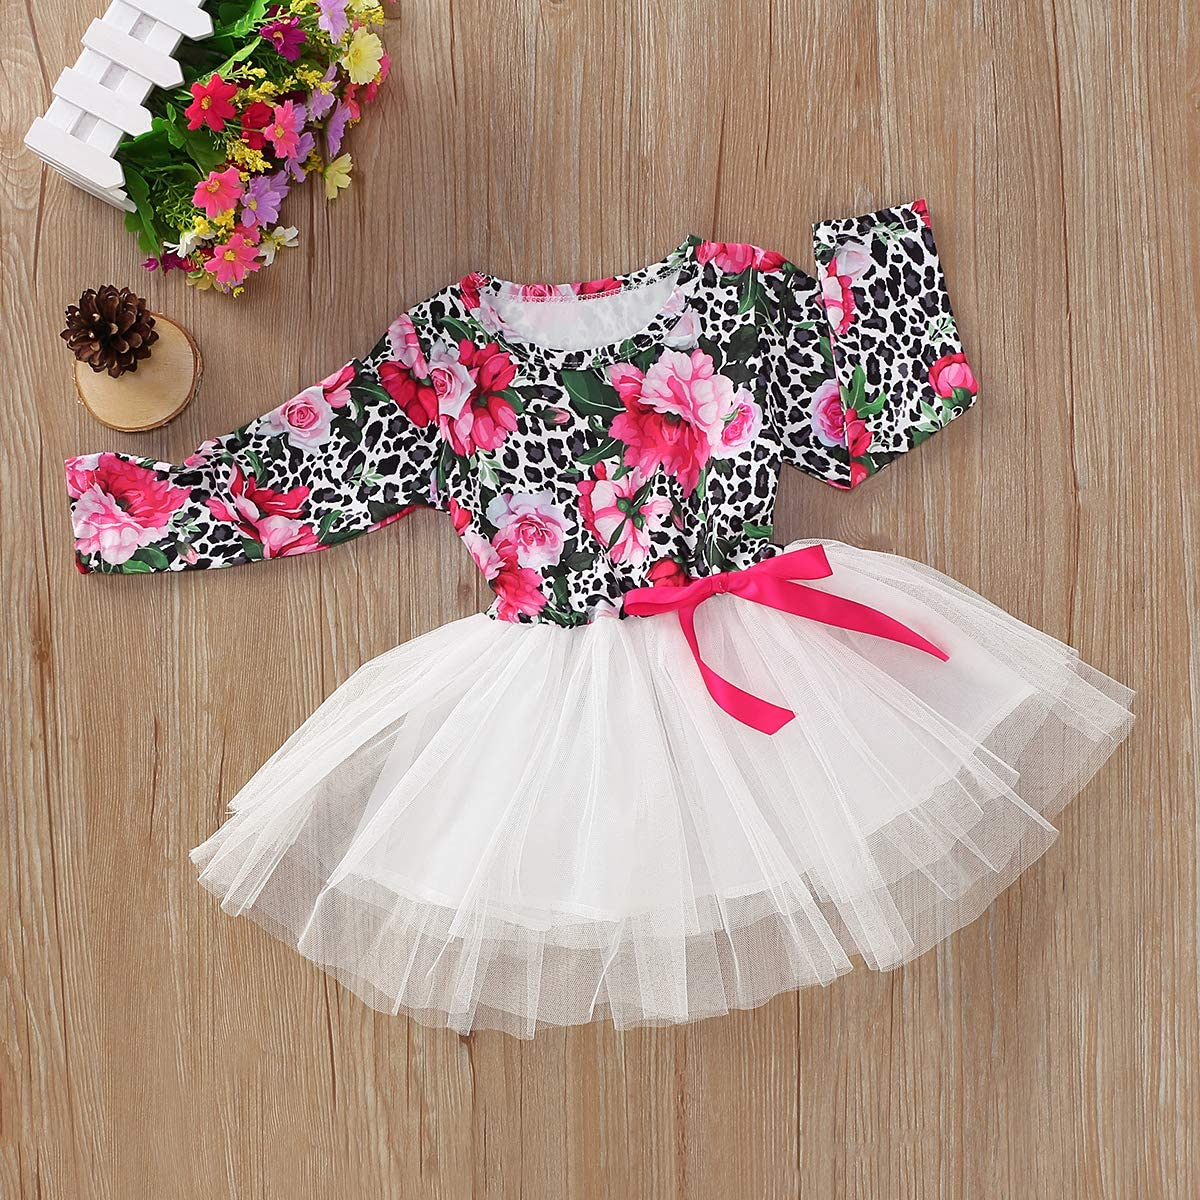 Toddler Baby Girls Long Sleeve Dress Floral Print Tulle Skirts Dress Autumn Outfits